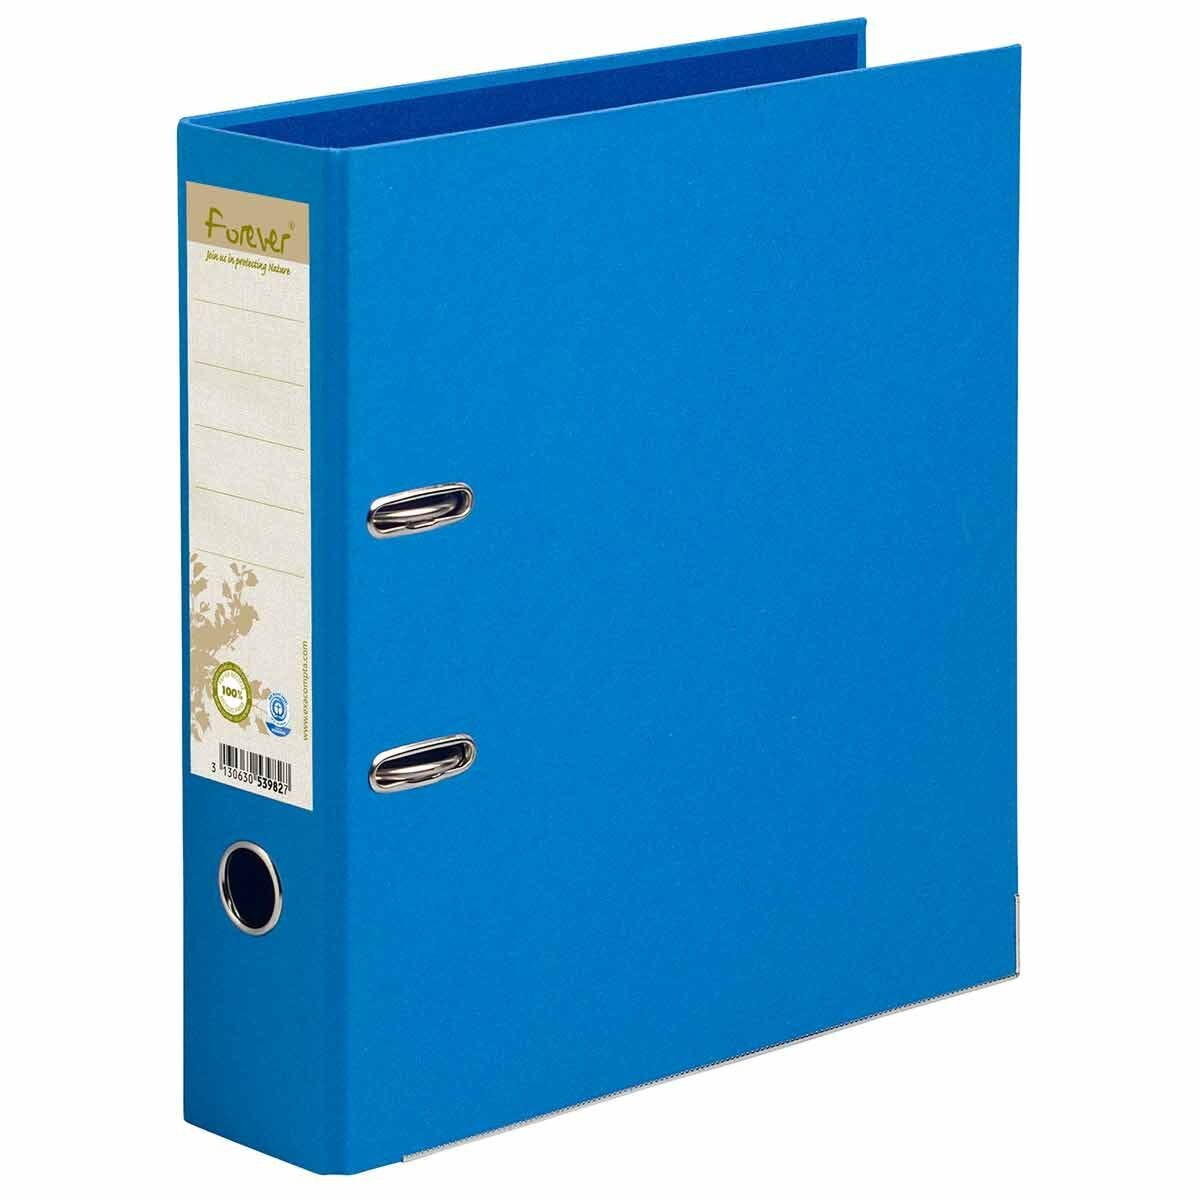 Exacompta Forever PremTouch Lever Arch File A4 80mm Pack of 10